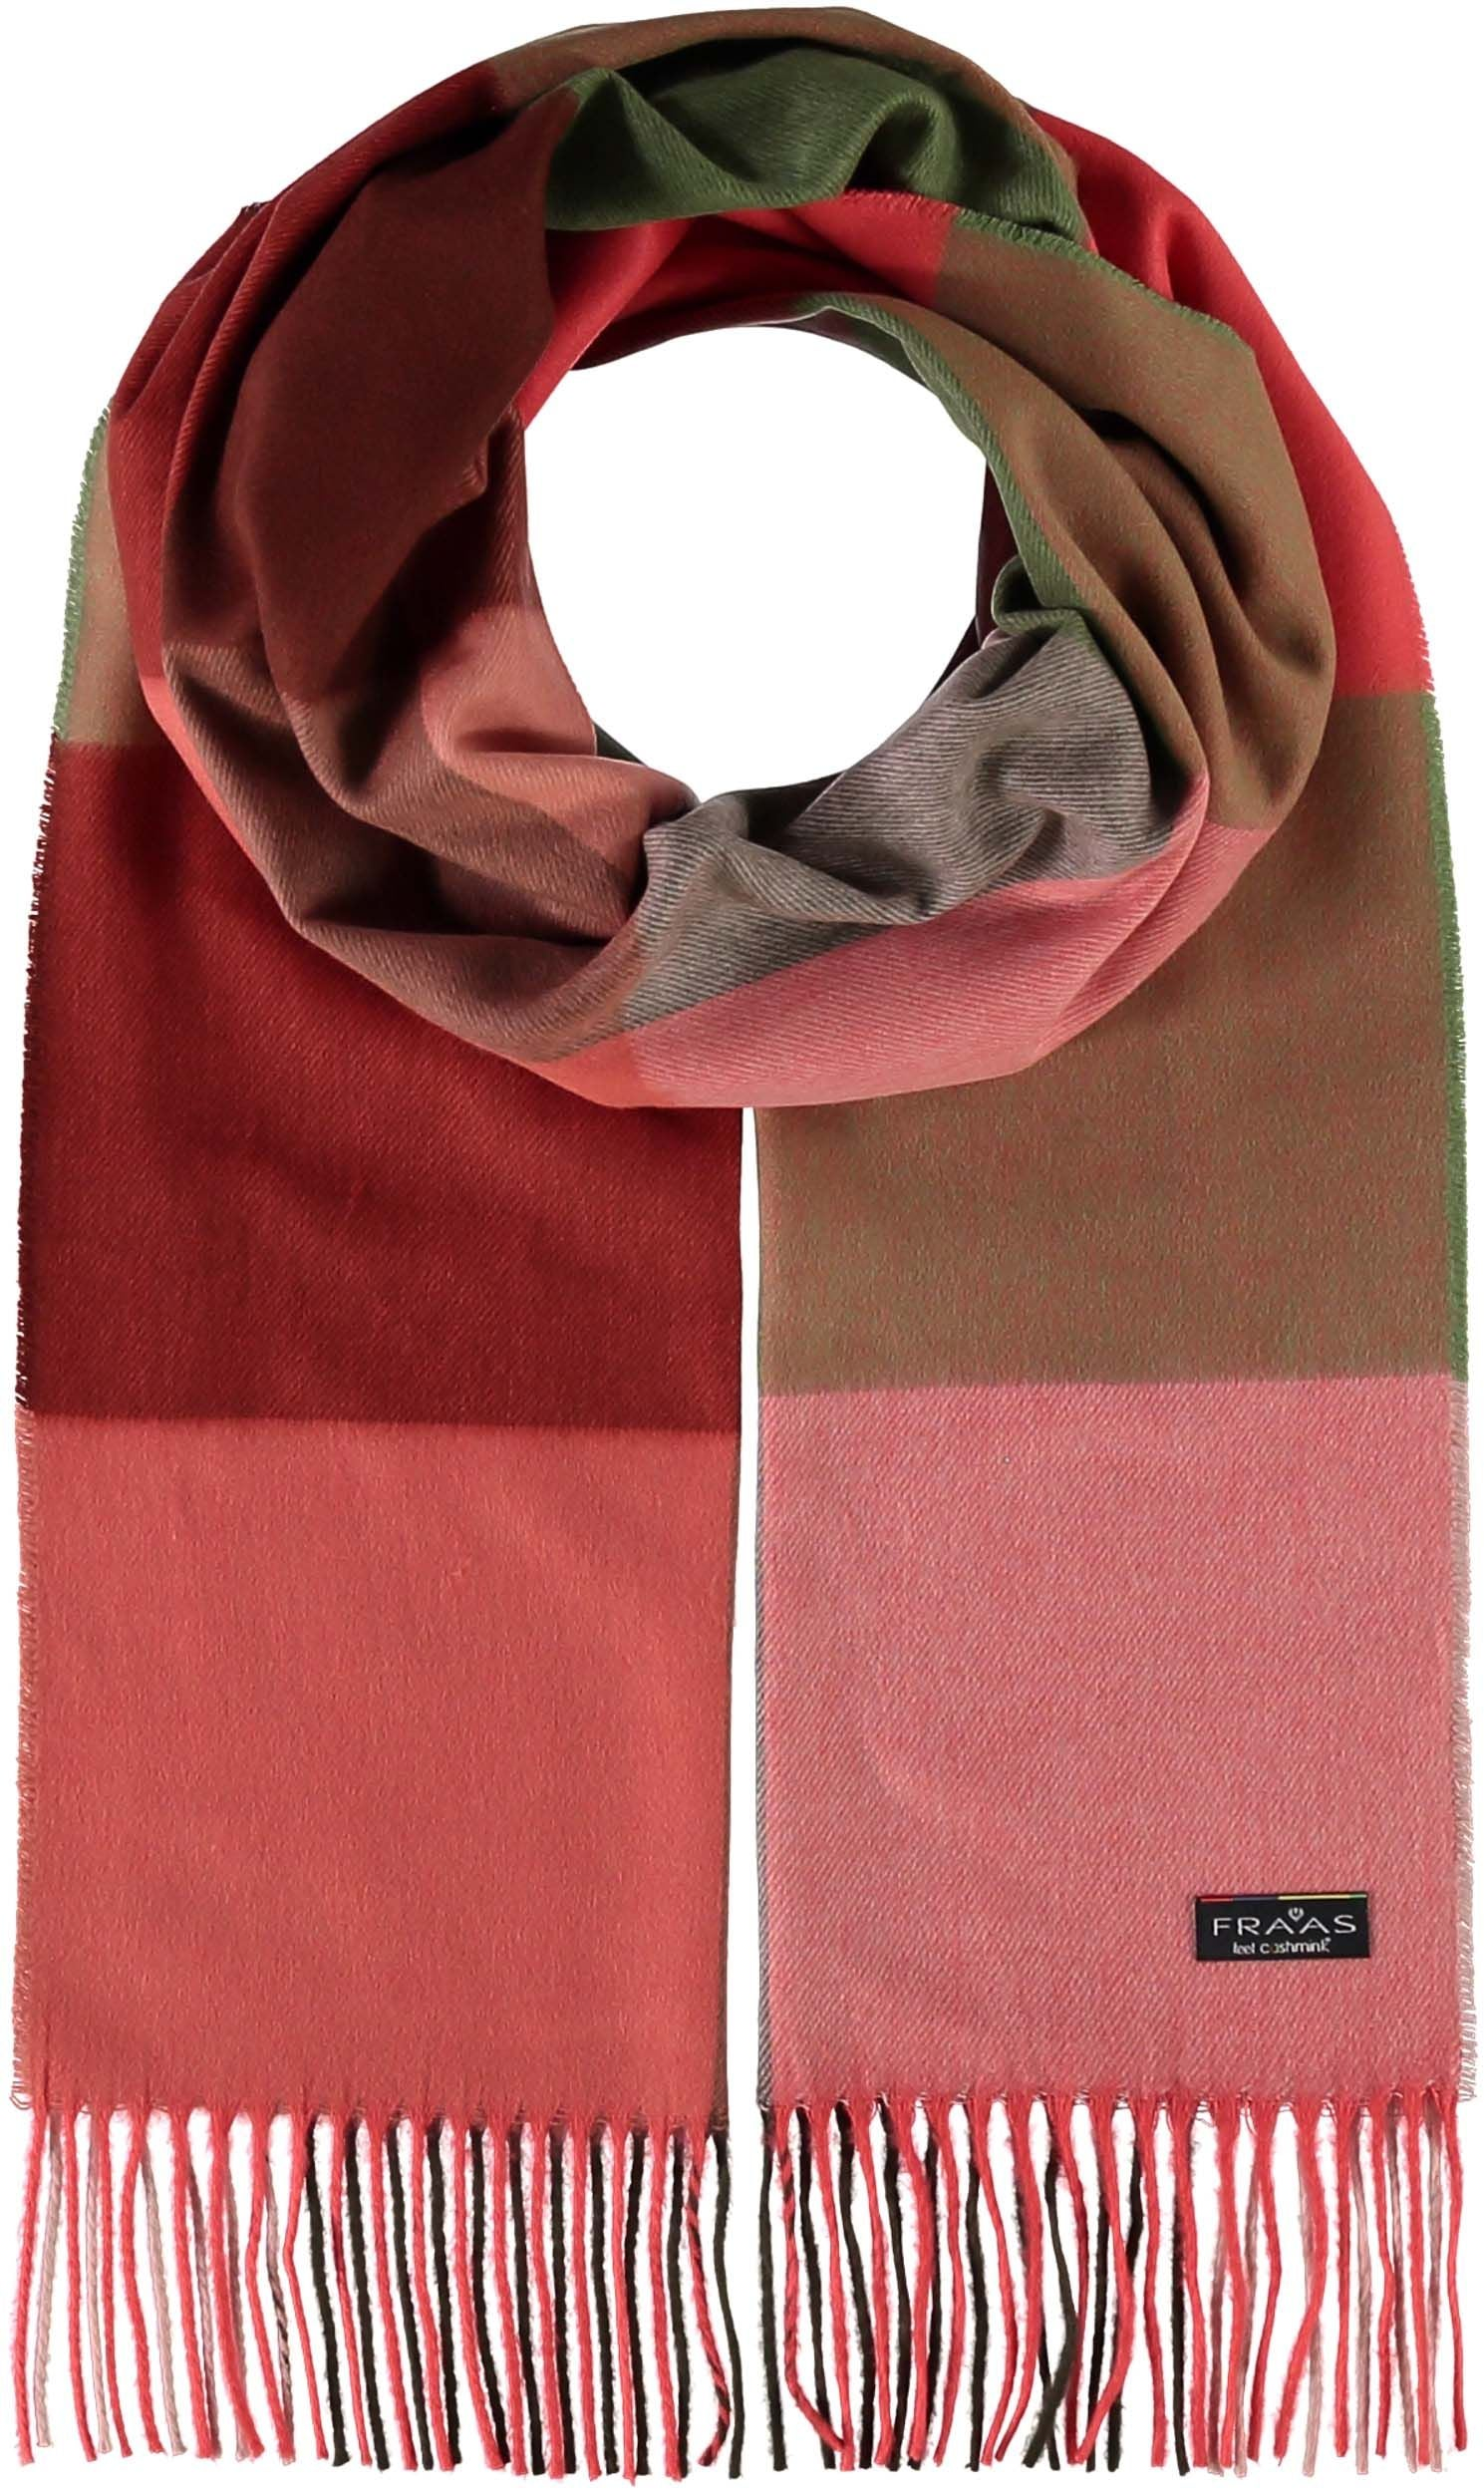 Multi Color Block Oversized Cashmink Scarf